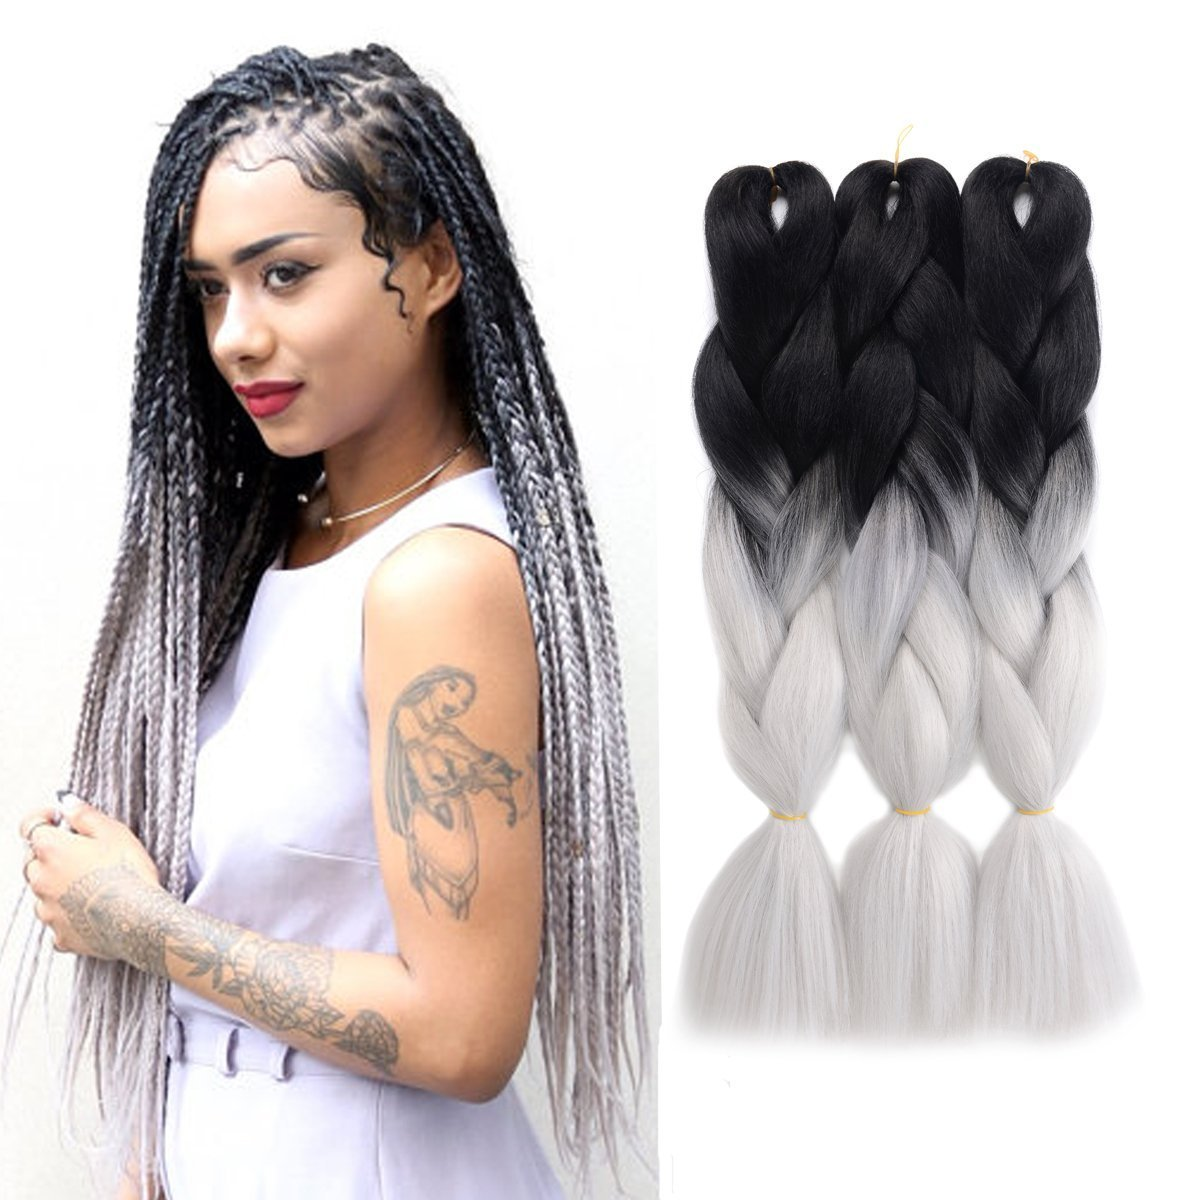 Amazon.com : JIAMEISI Two Tone Ombre Jumbo Braid Hair Extension 5Pcs ...